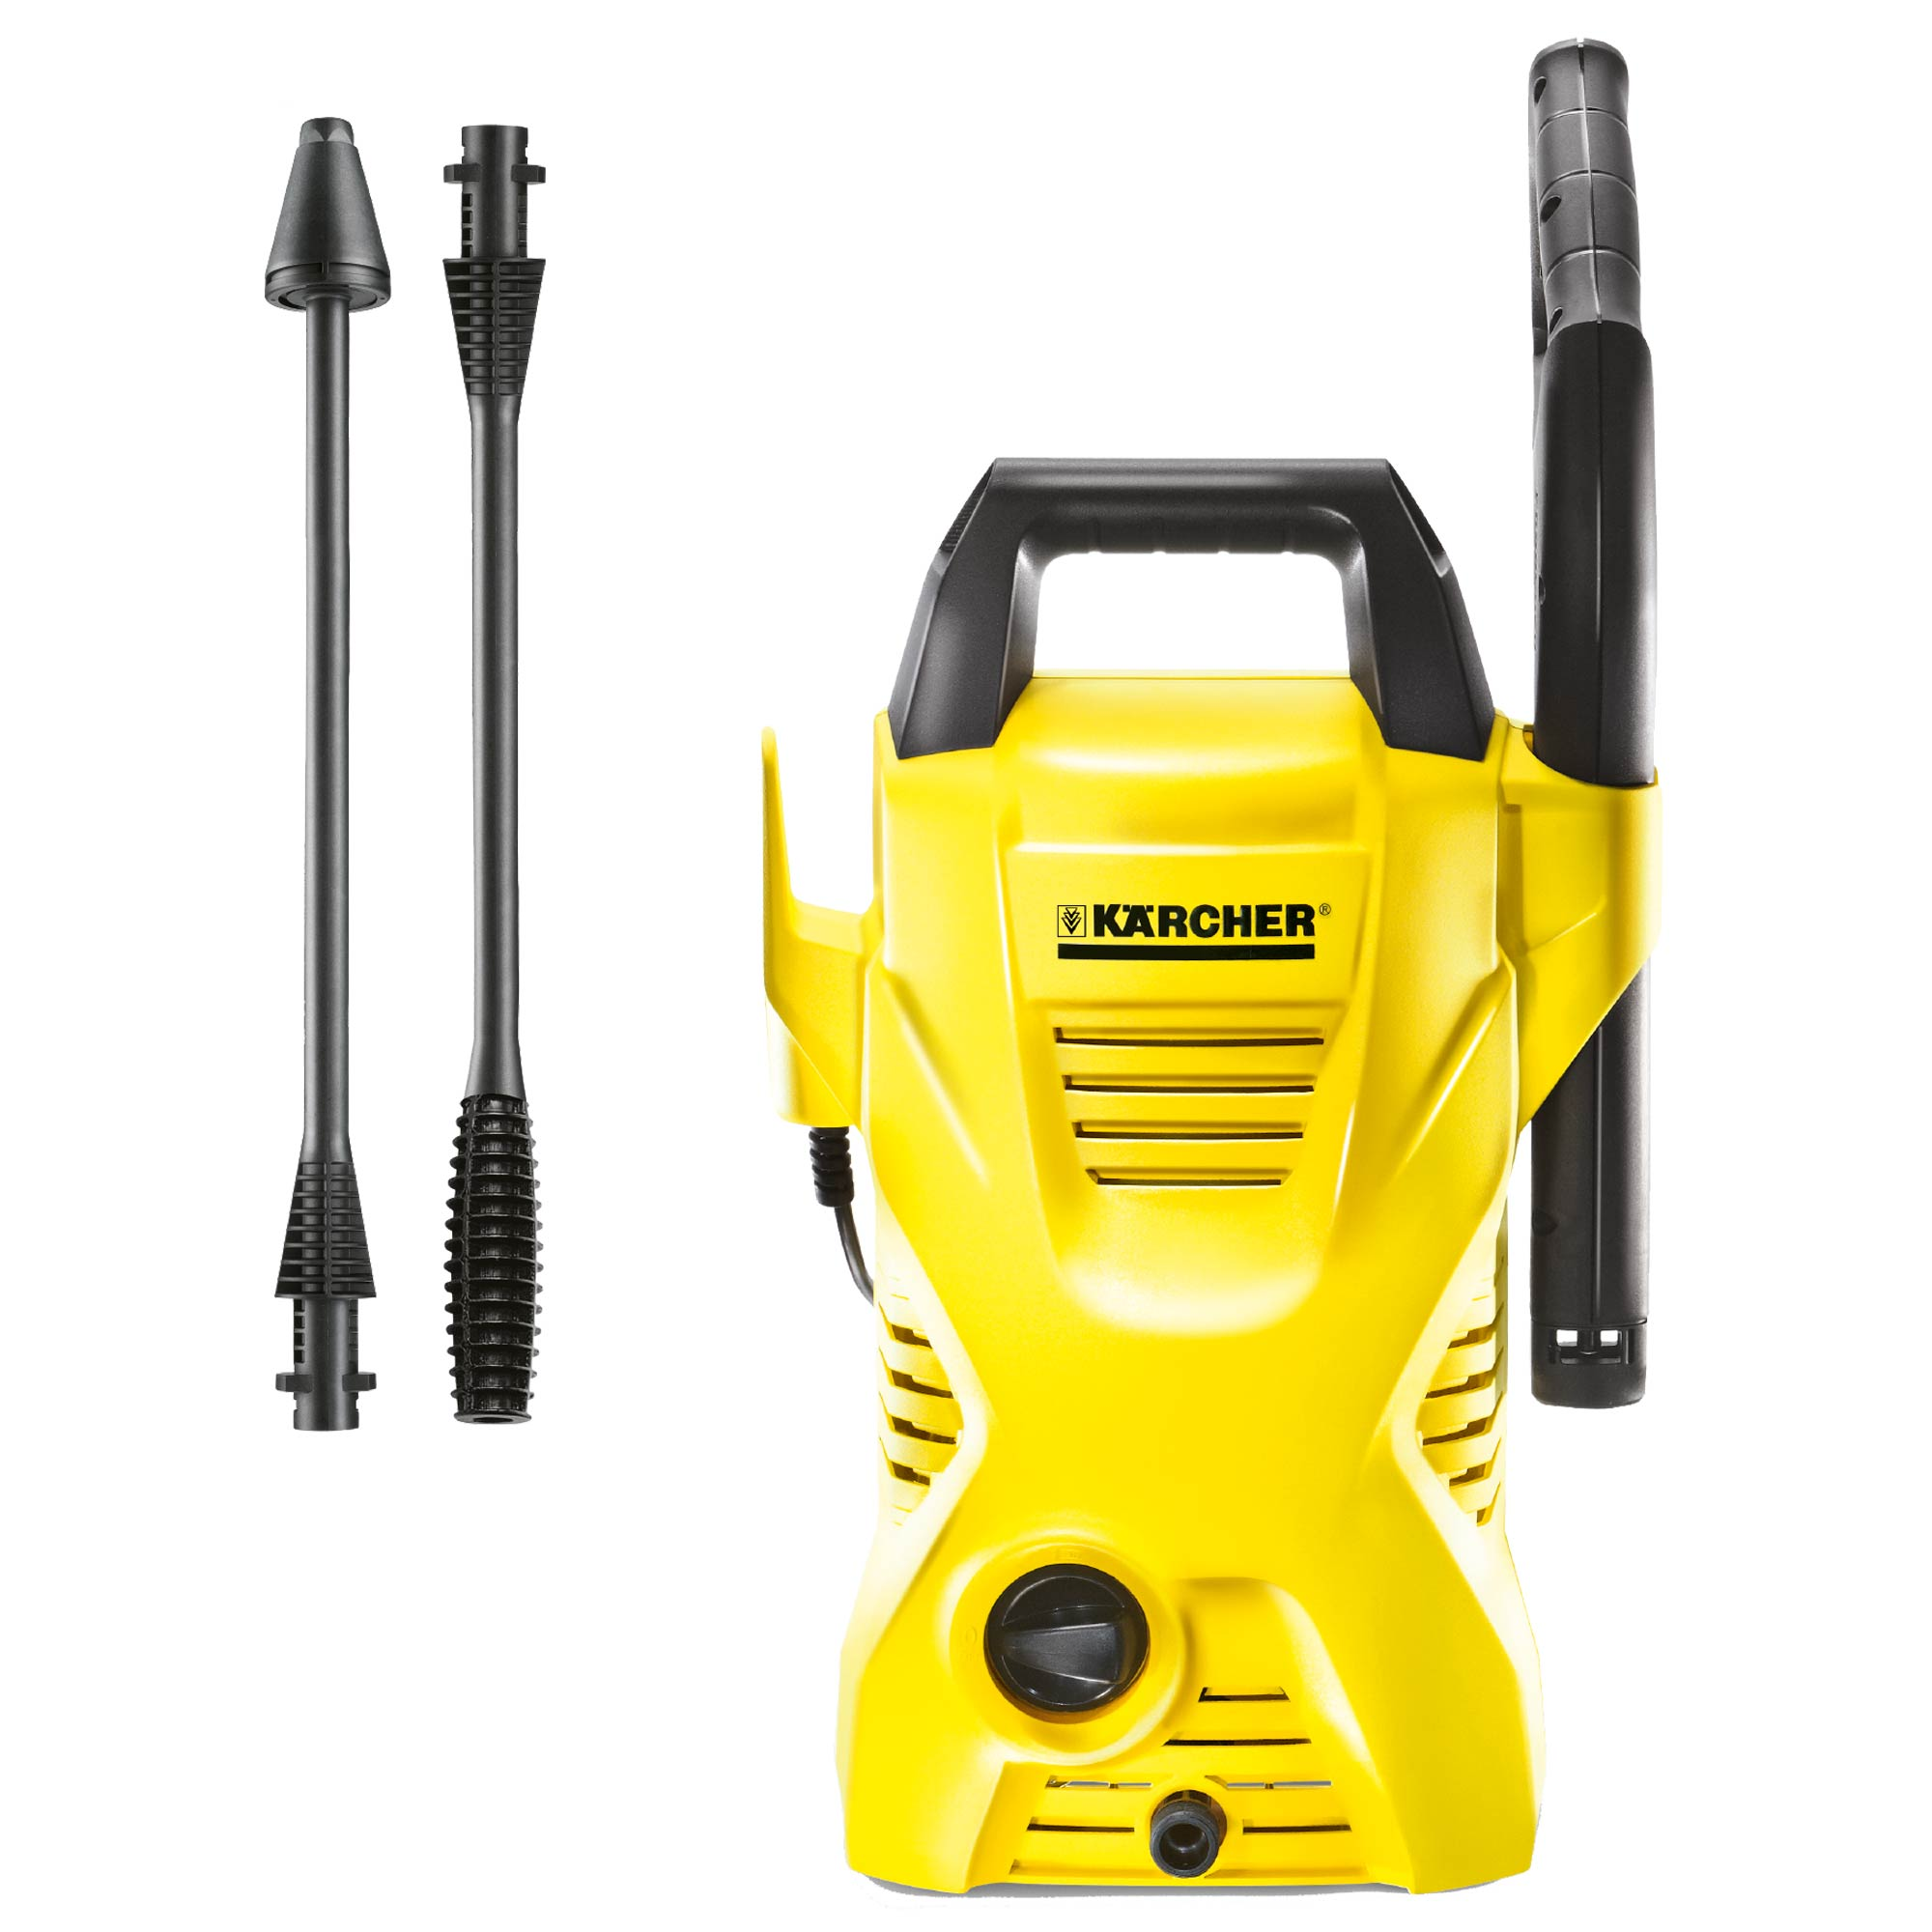 karcher k2 compact karcher 110 bar pressure washer. Black Bedroom Furniture Sets. Home Design Ideas